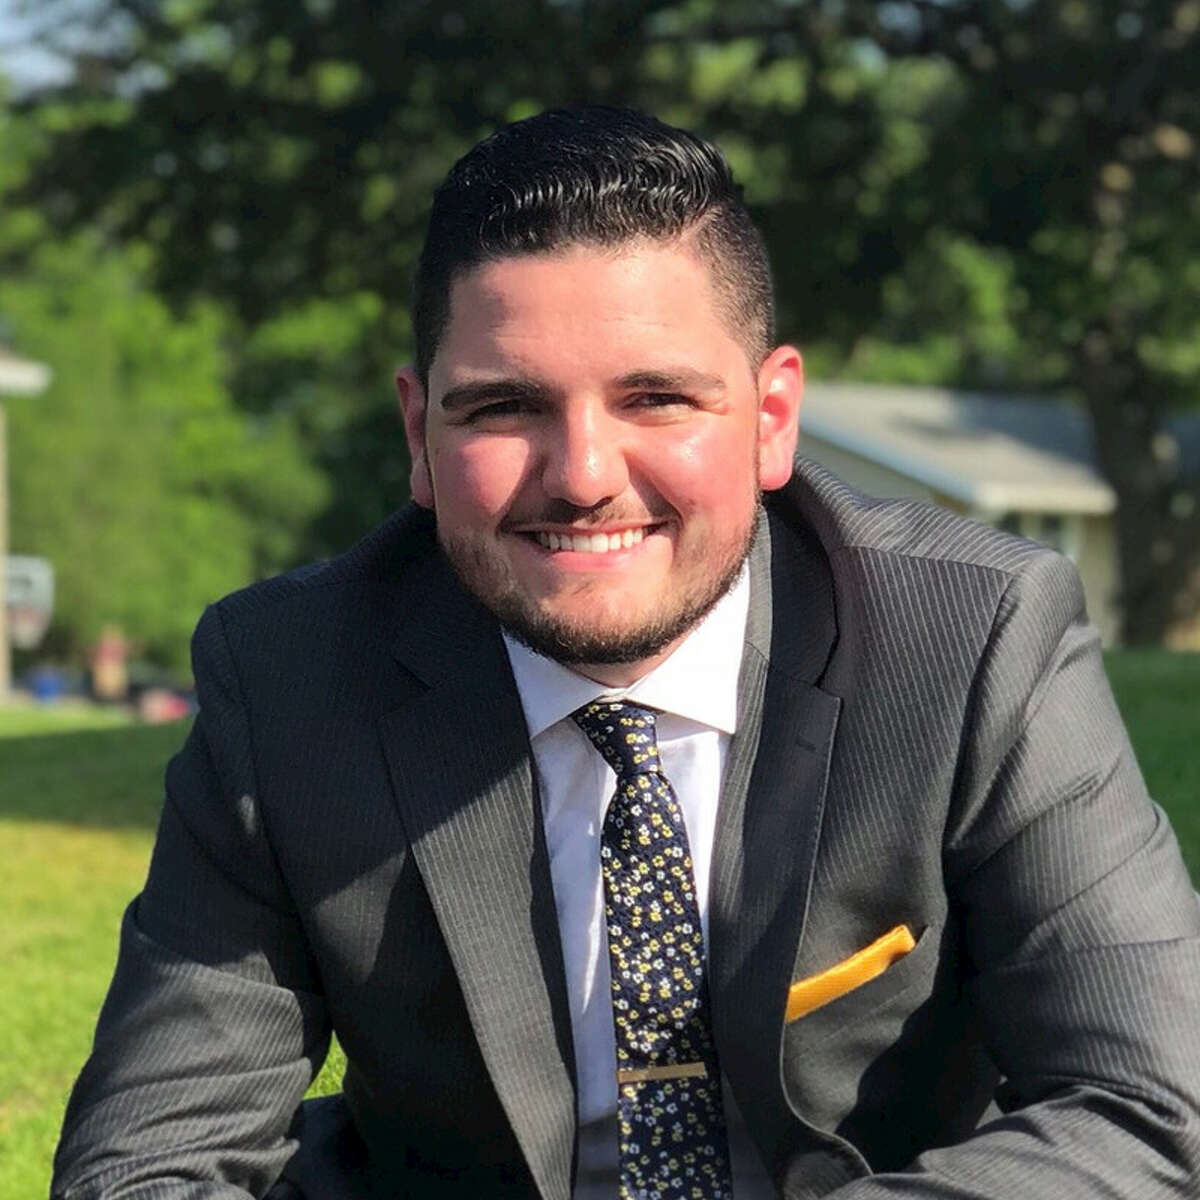 Juliano Febo, a 21-year-old Republican, is running for Schenectady County Legislature District 3 in the November 2019 election.